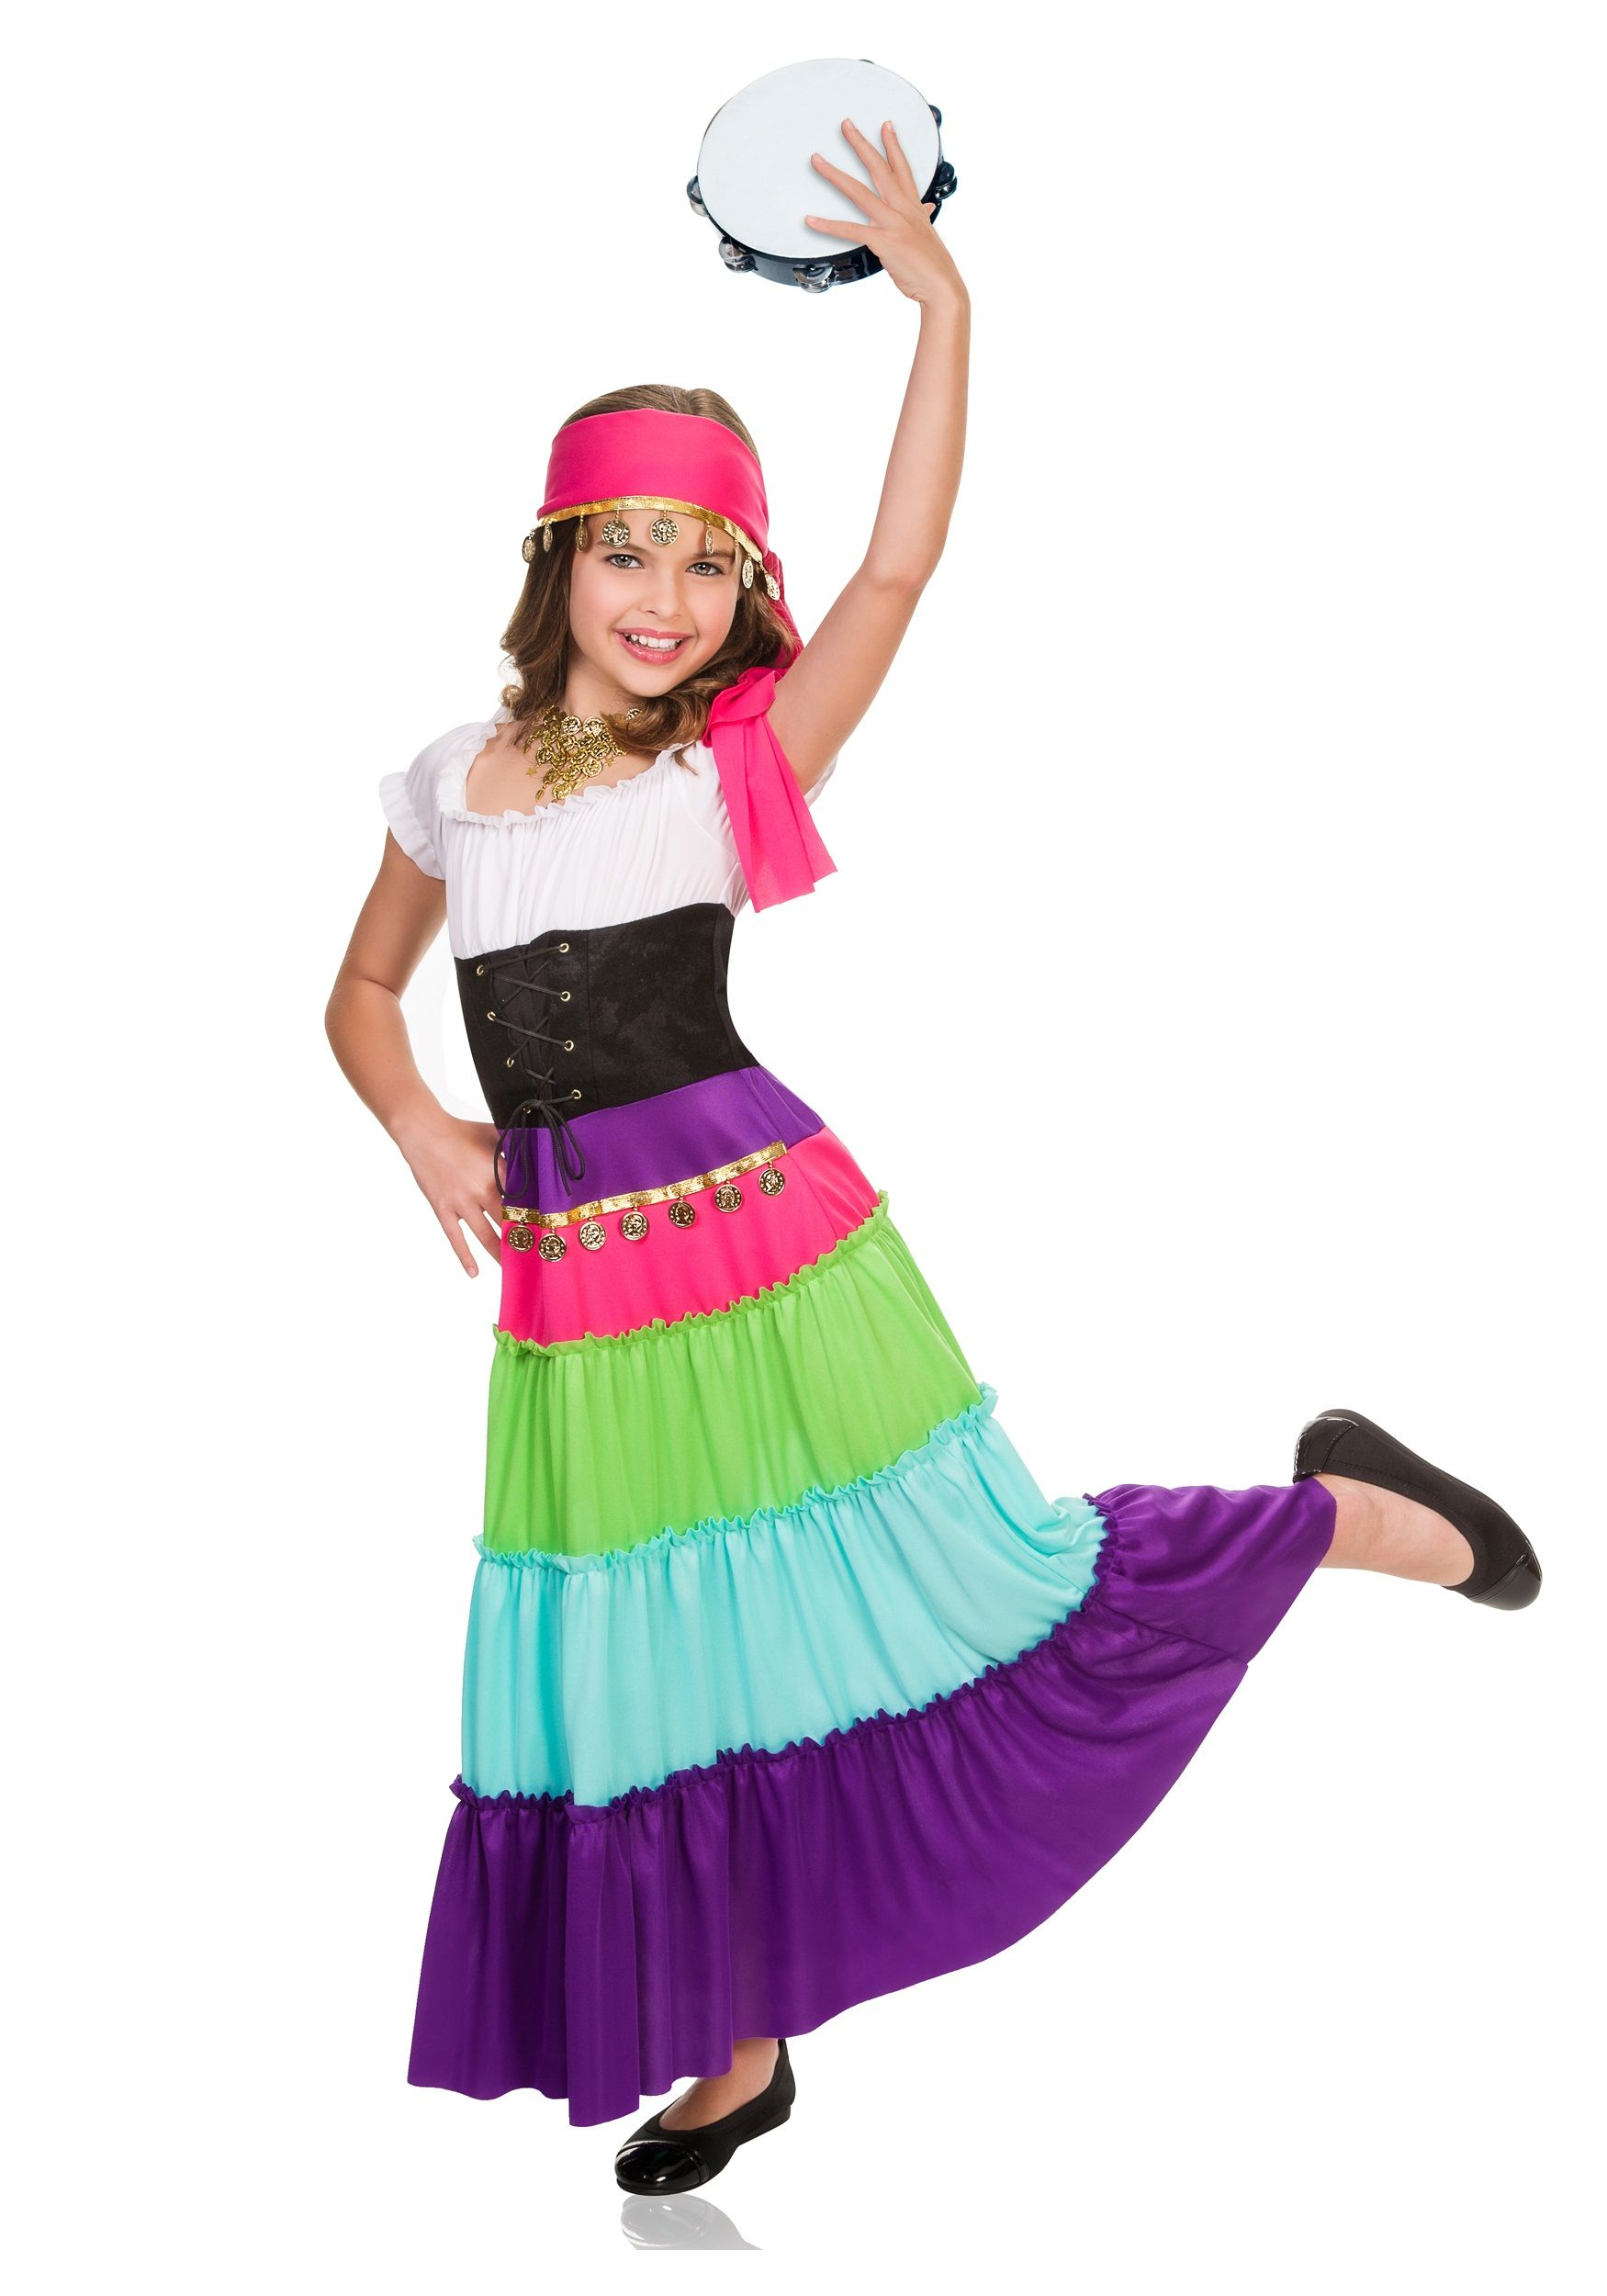 c4d6b3623 Child Renaissance Gypsy Costume | Carnival parties | Gypsy costume ...